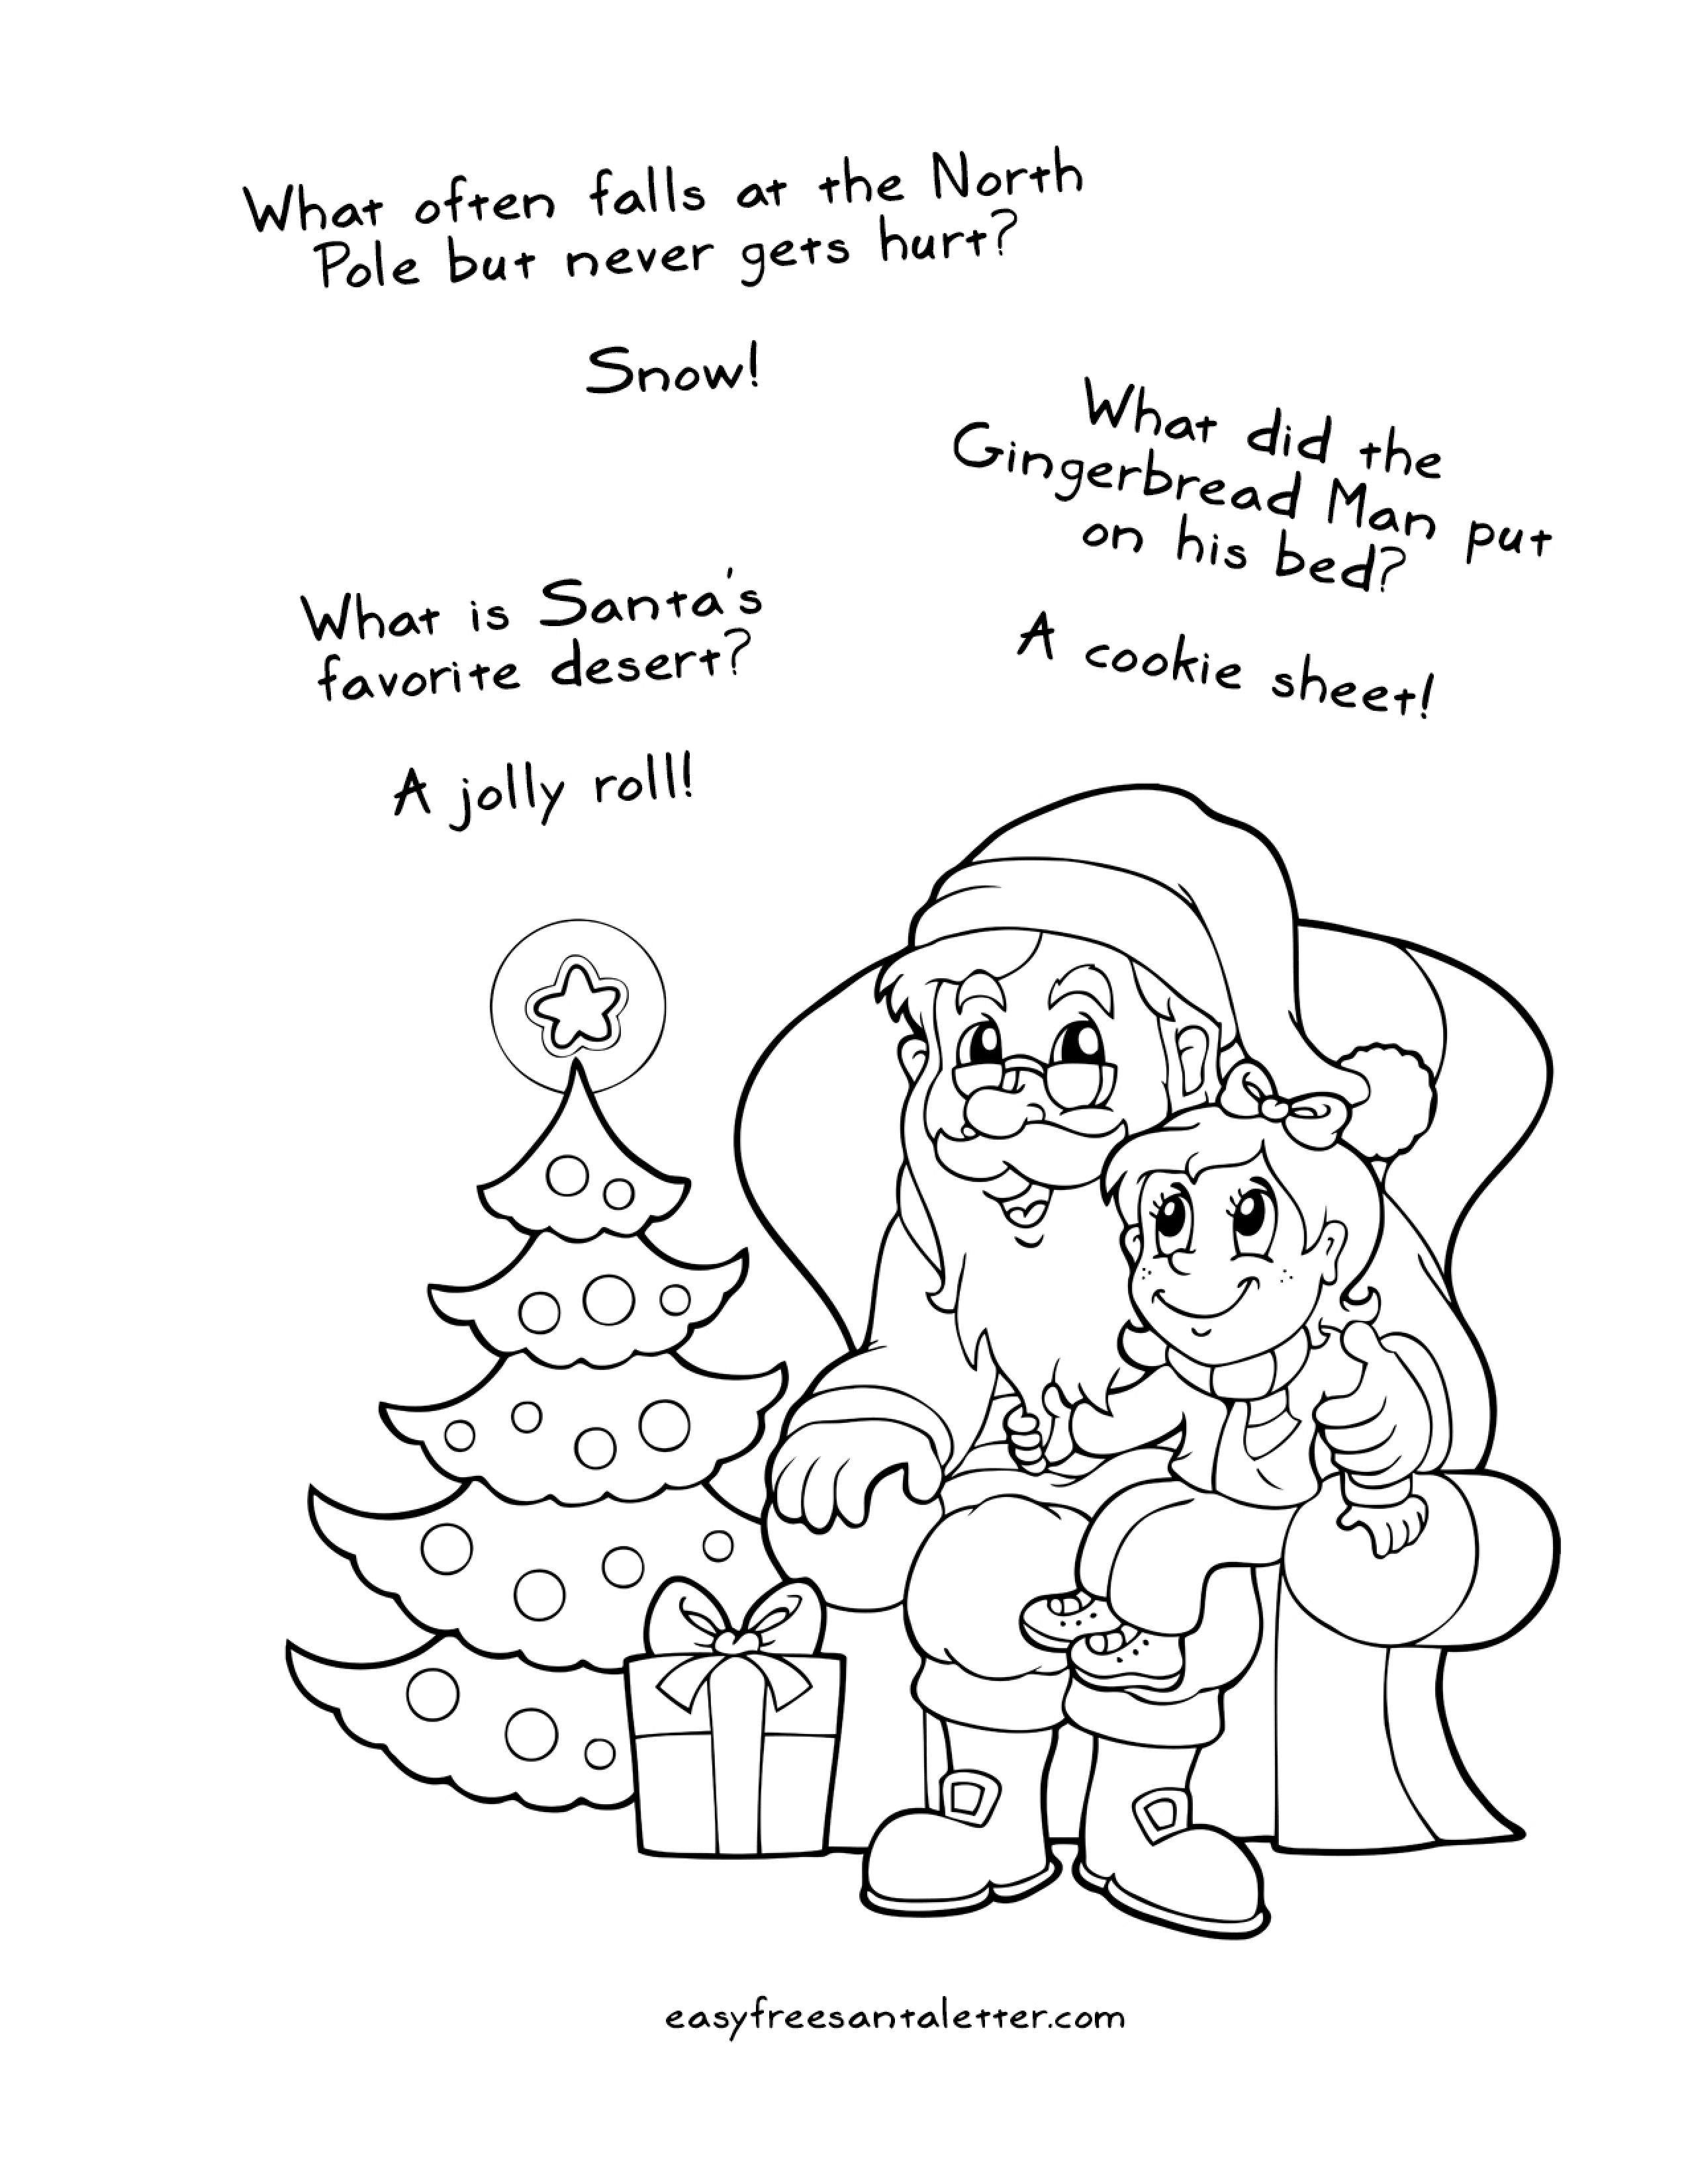 Santa Face Coloring Page Template With Free Printable Christmas Pages Jokes And